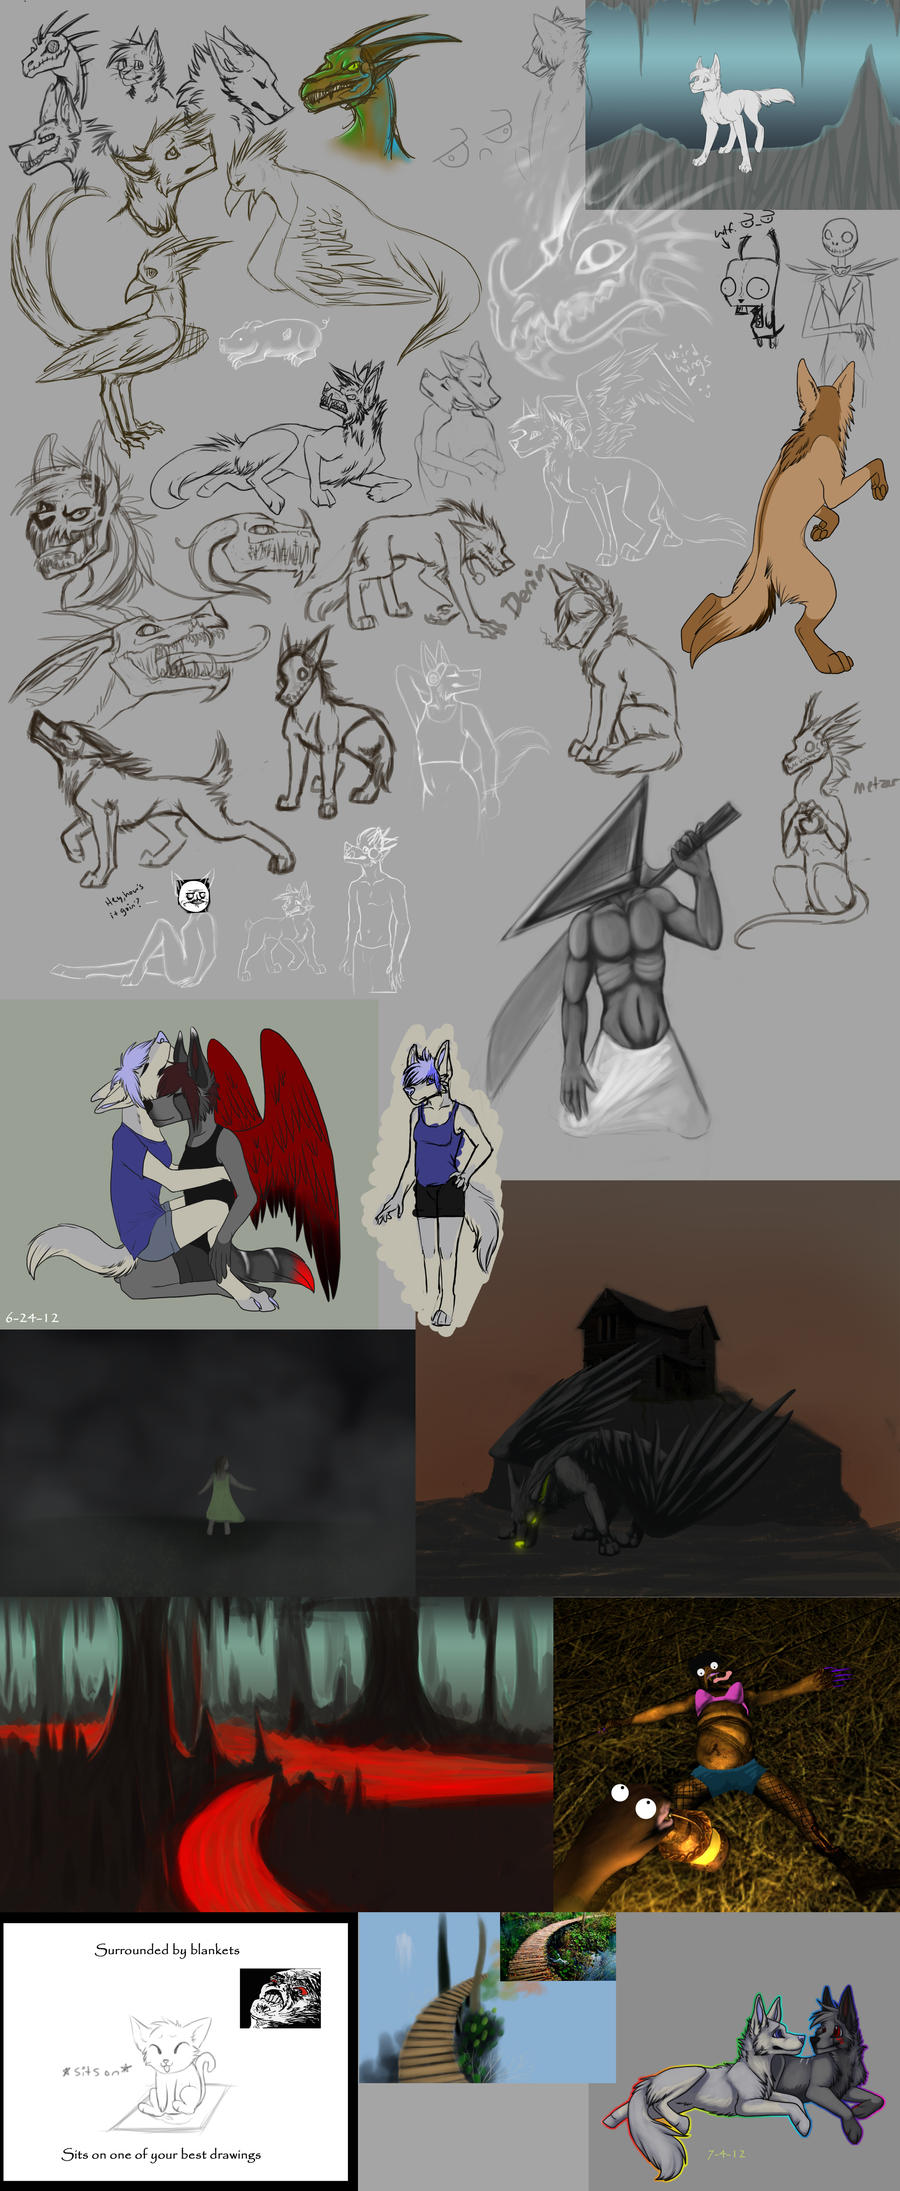 Huge sketch dump 3 by xXNuclearXx